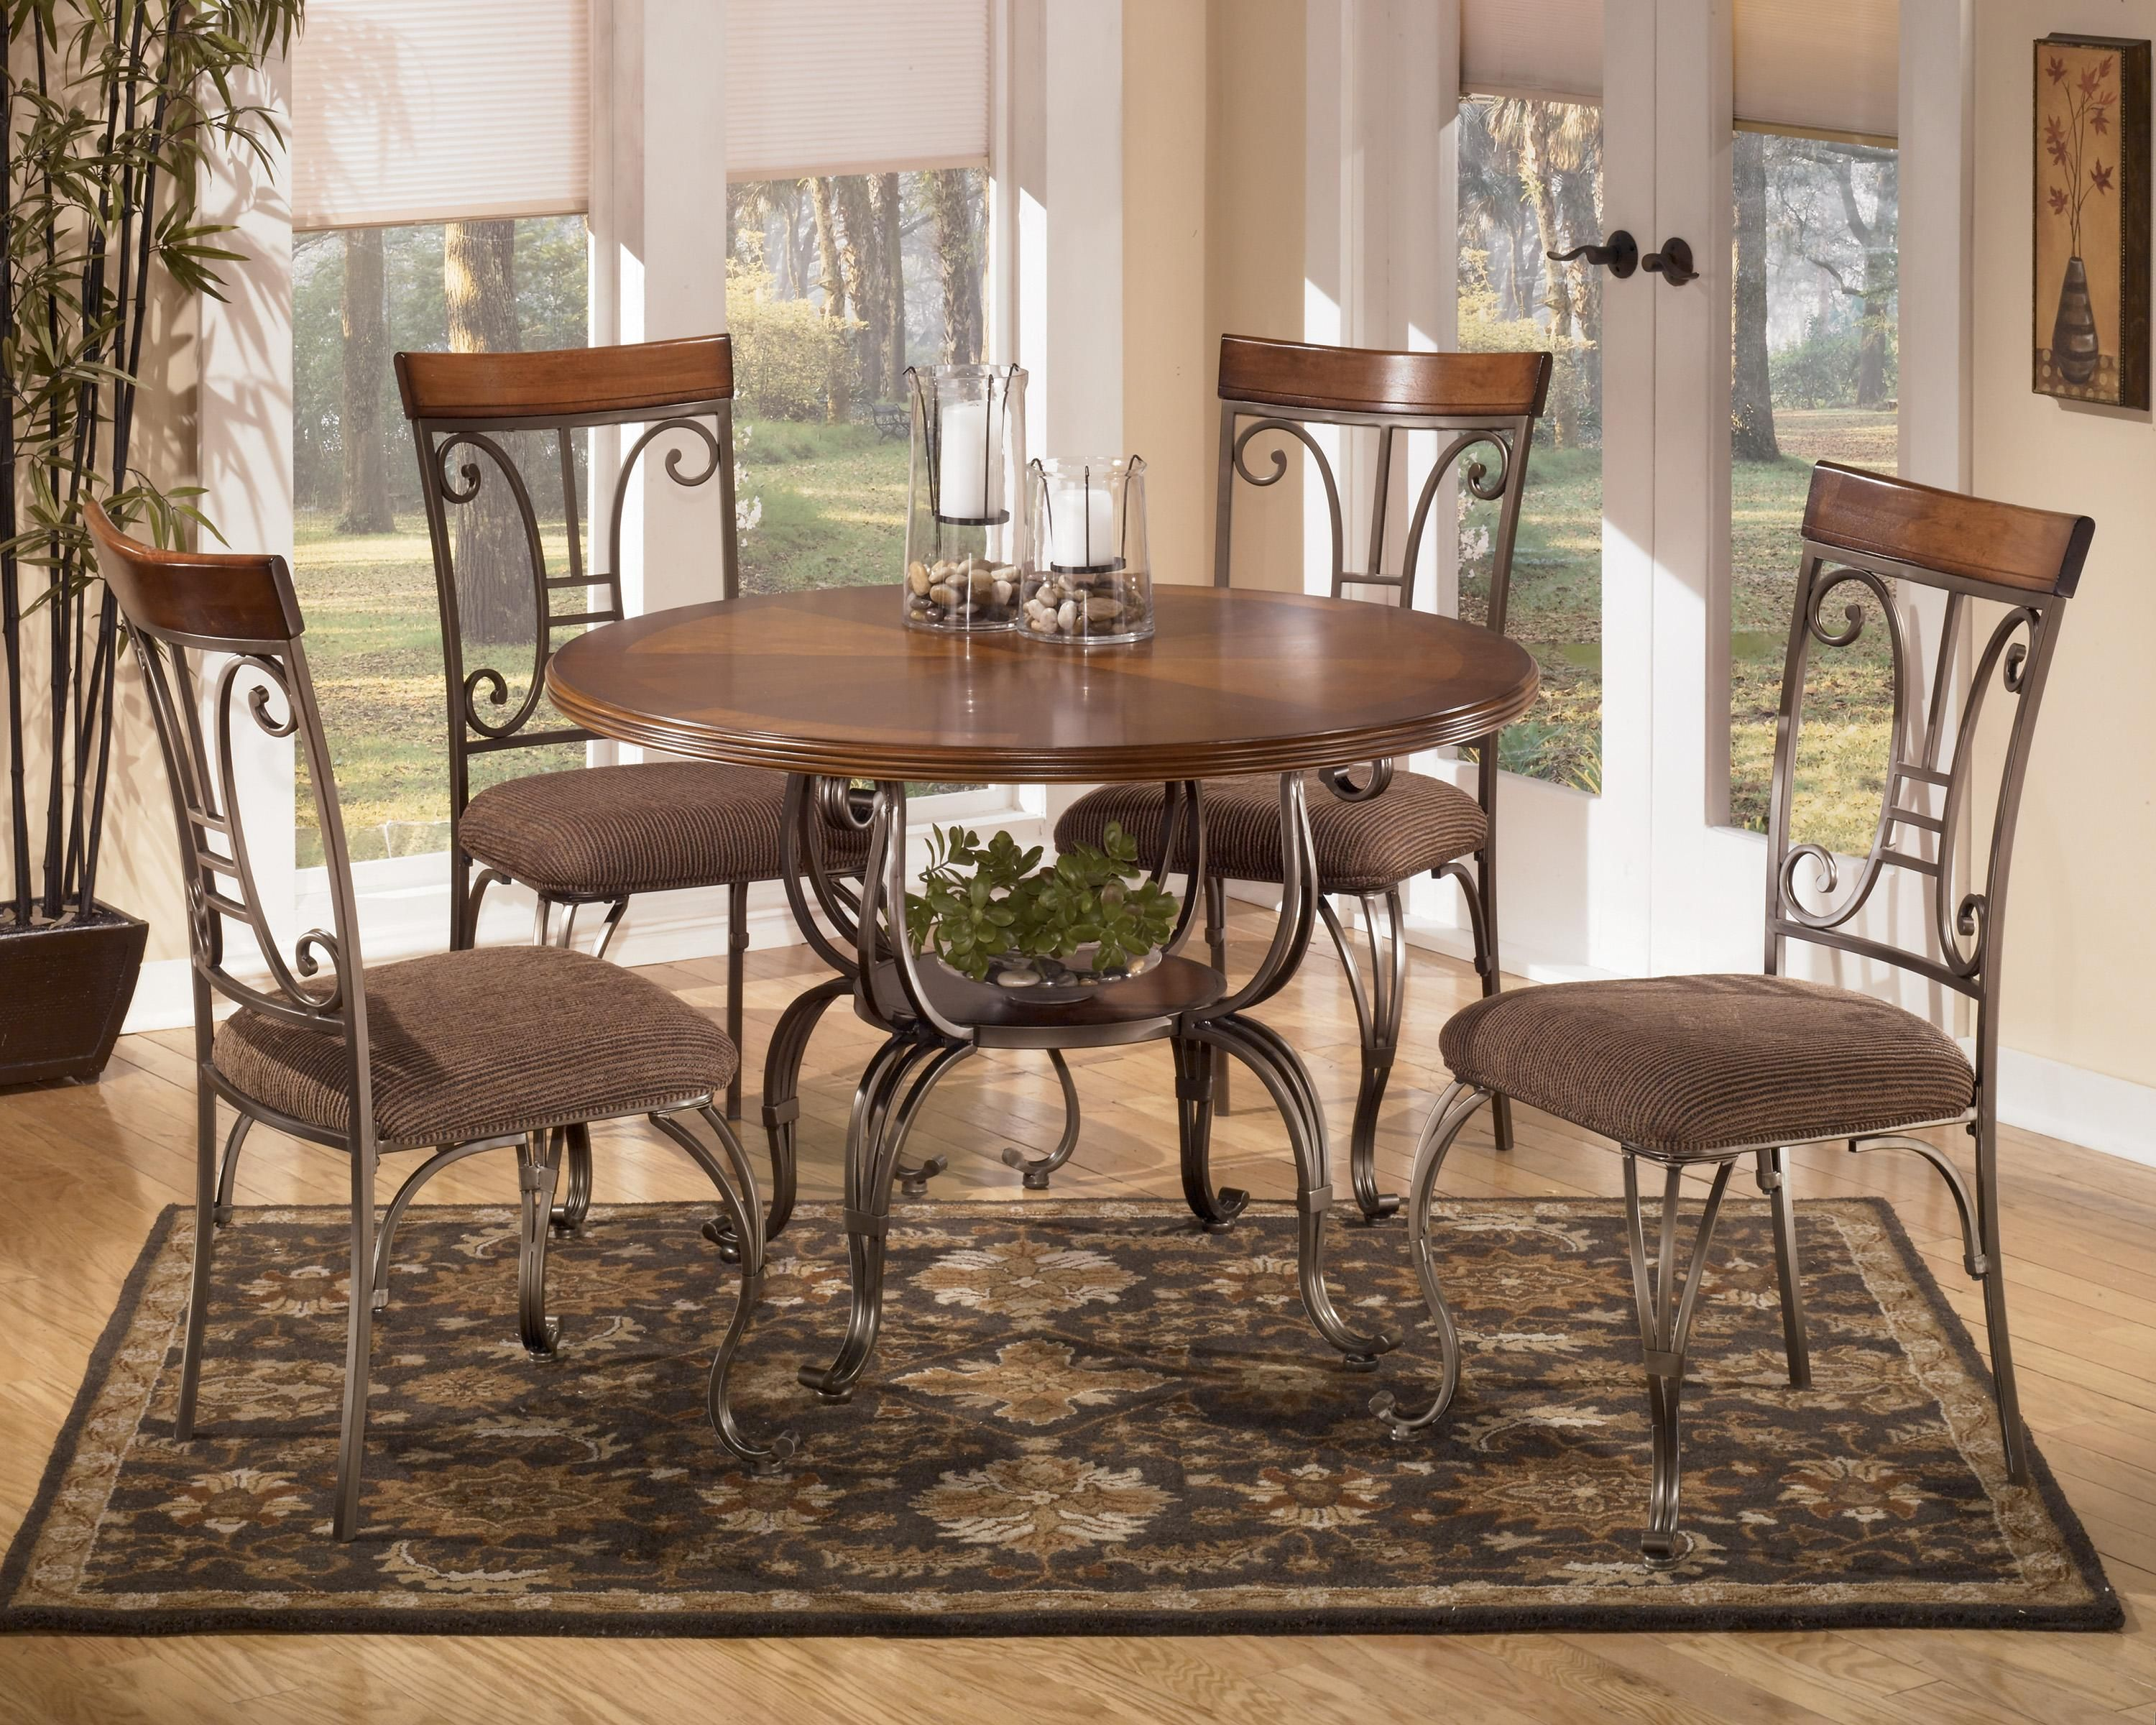 Ashley Furniture Kitchen Chairs Plentywood 5 Piece Round Dining Table Set By Signature Design By